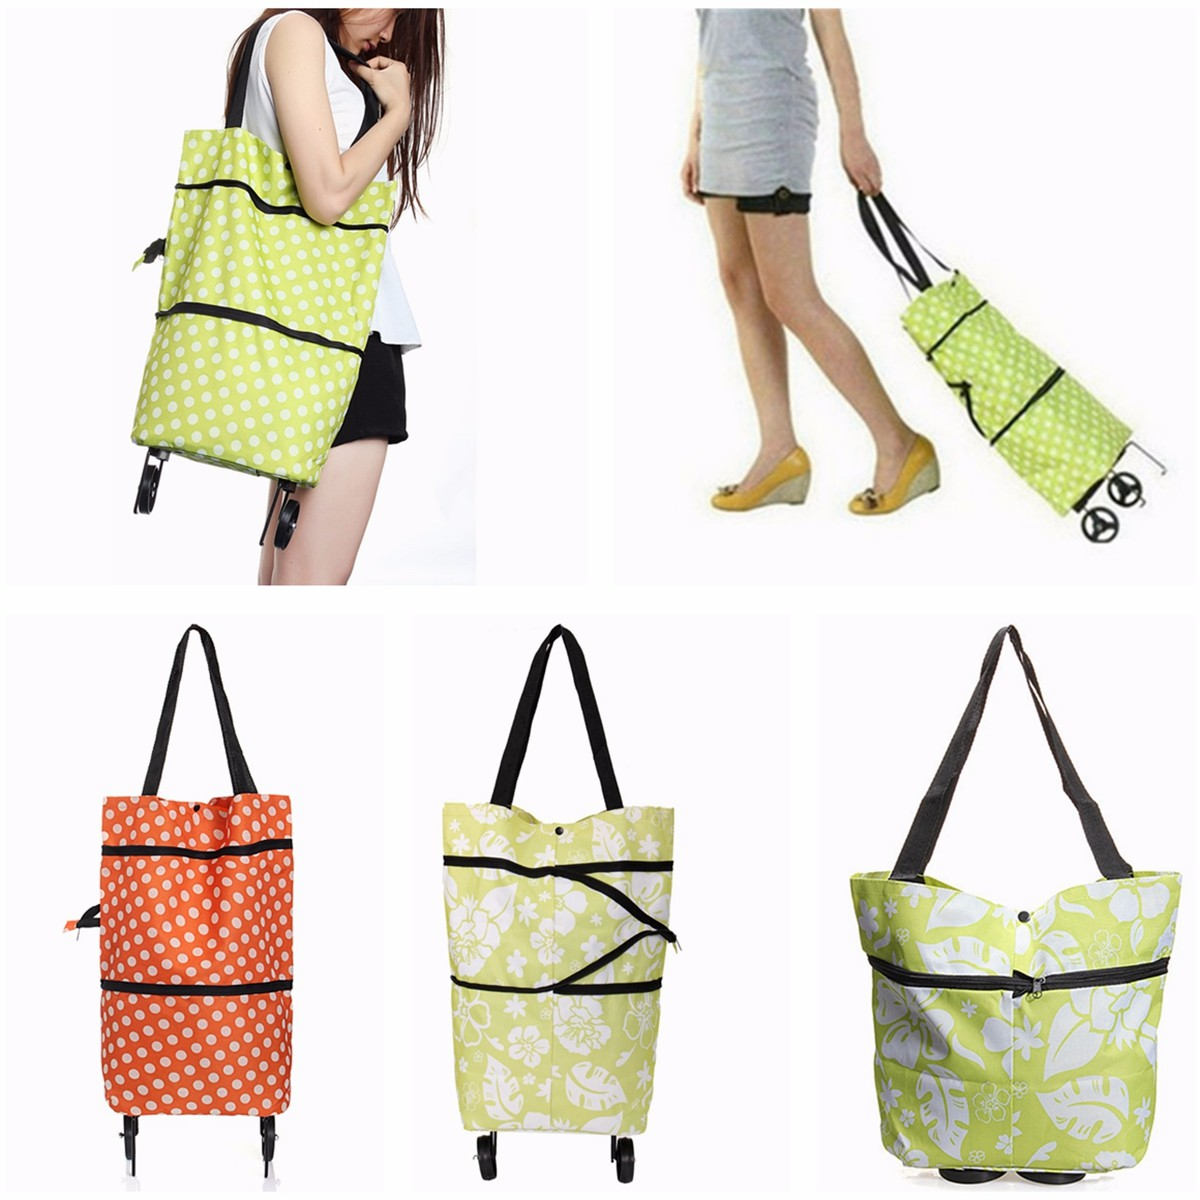 Foldable Shopping Trolley Cart Rolling Wheels Grocery Shoulder Tote Bag Handbags